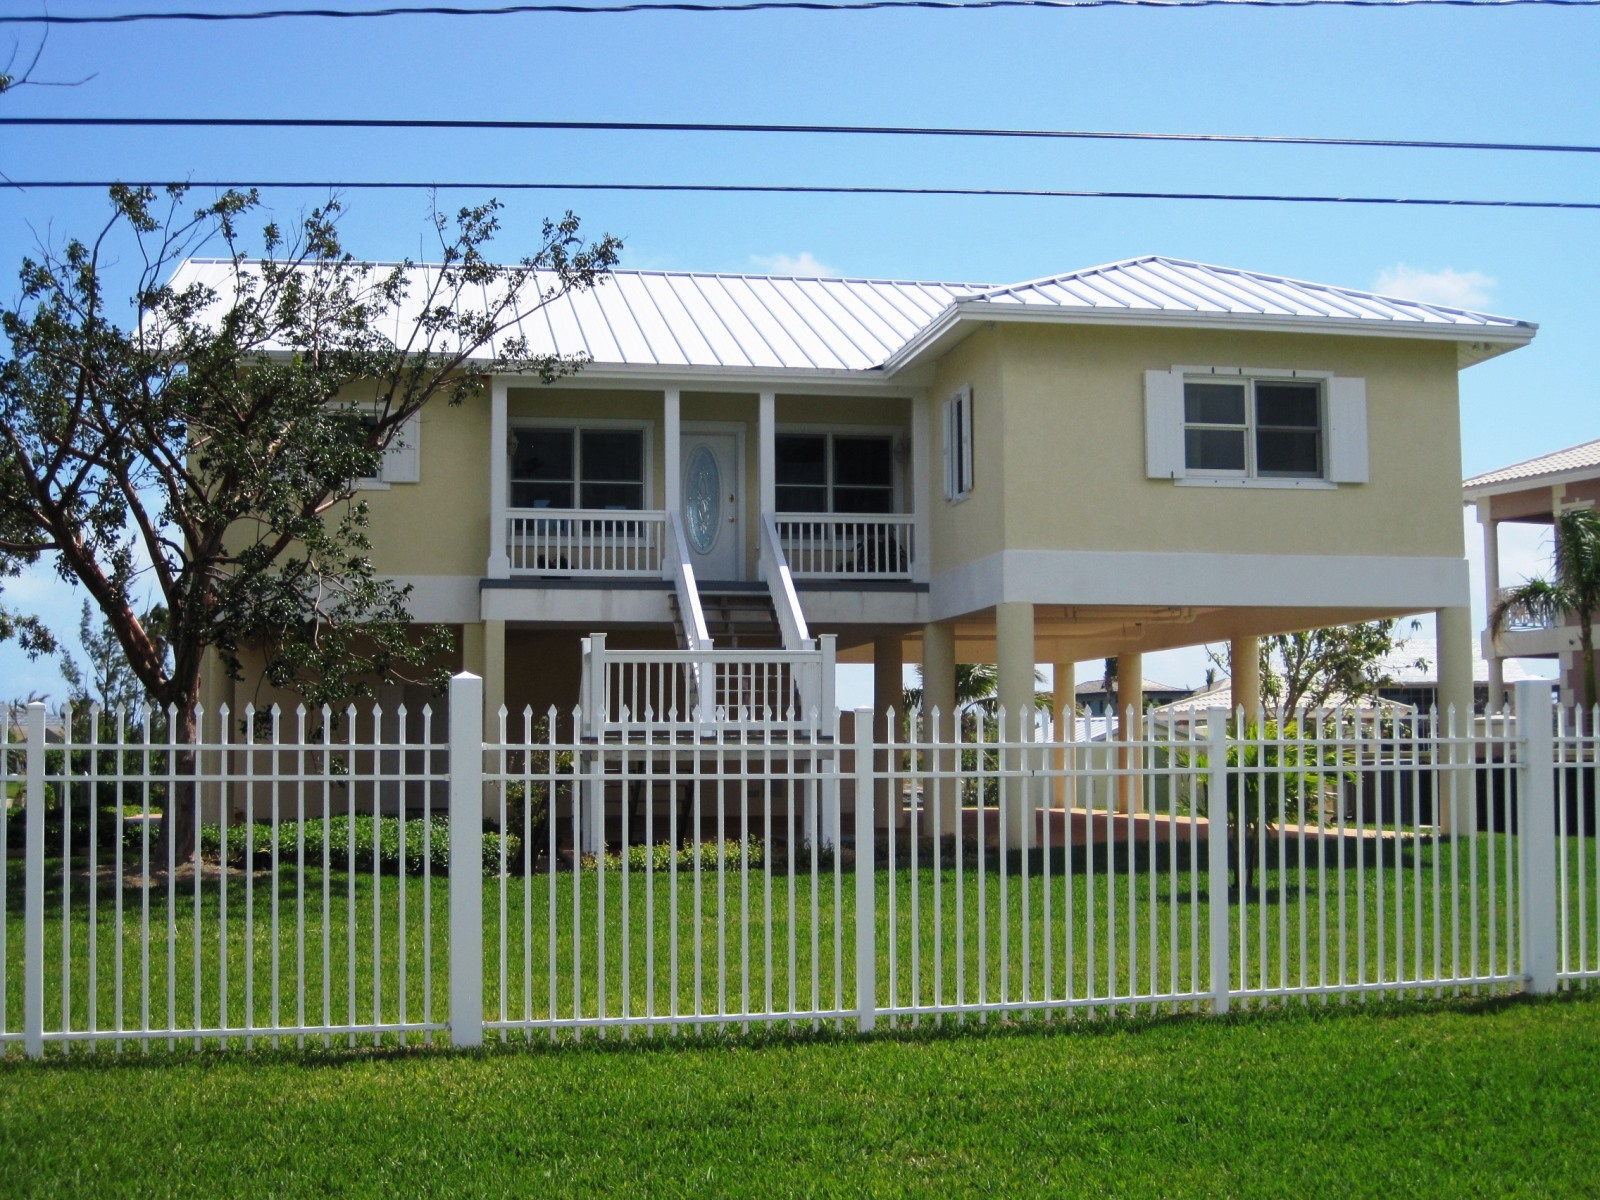 Single Family Home for Sale at Gorgeous Waterfront Home on Scuttler's Avenue in Fortune Bay Fortune Bay, Grand Bahama, Bahamas